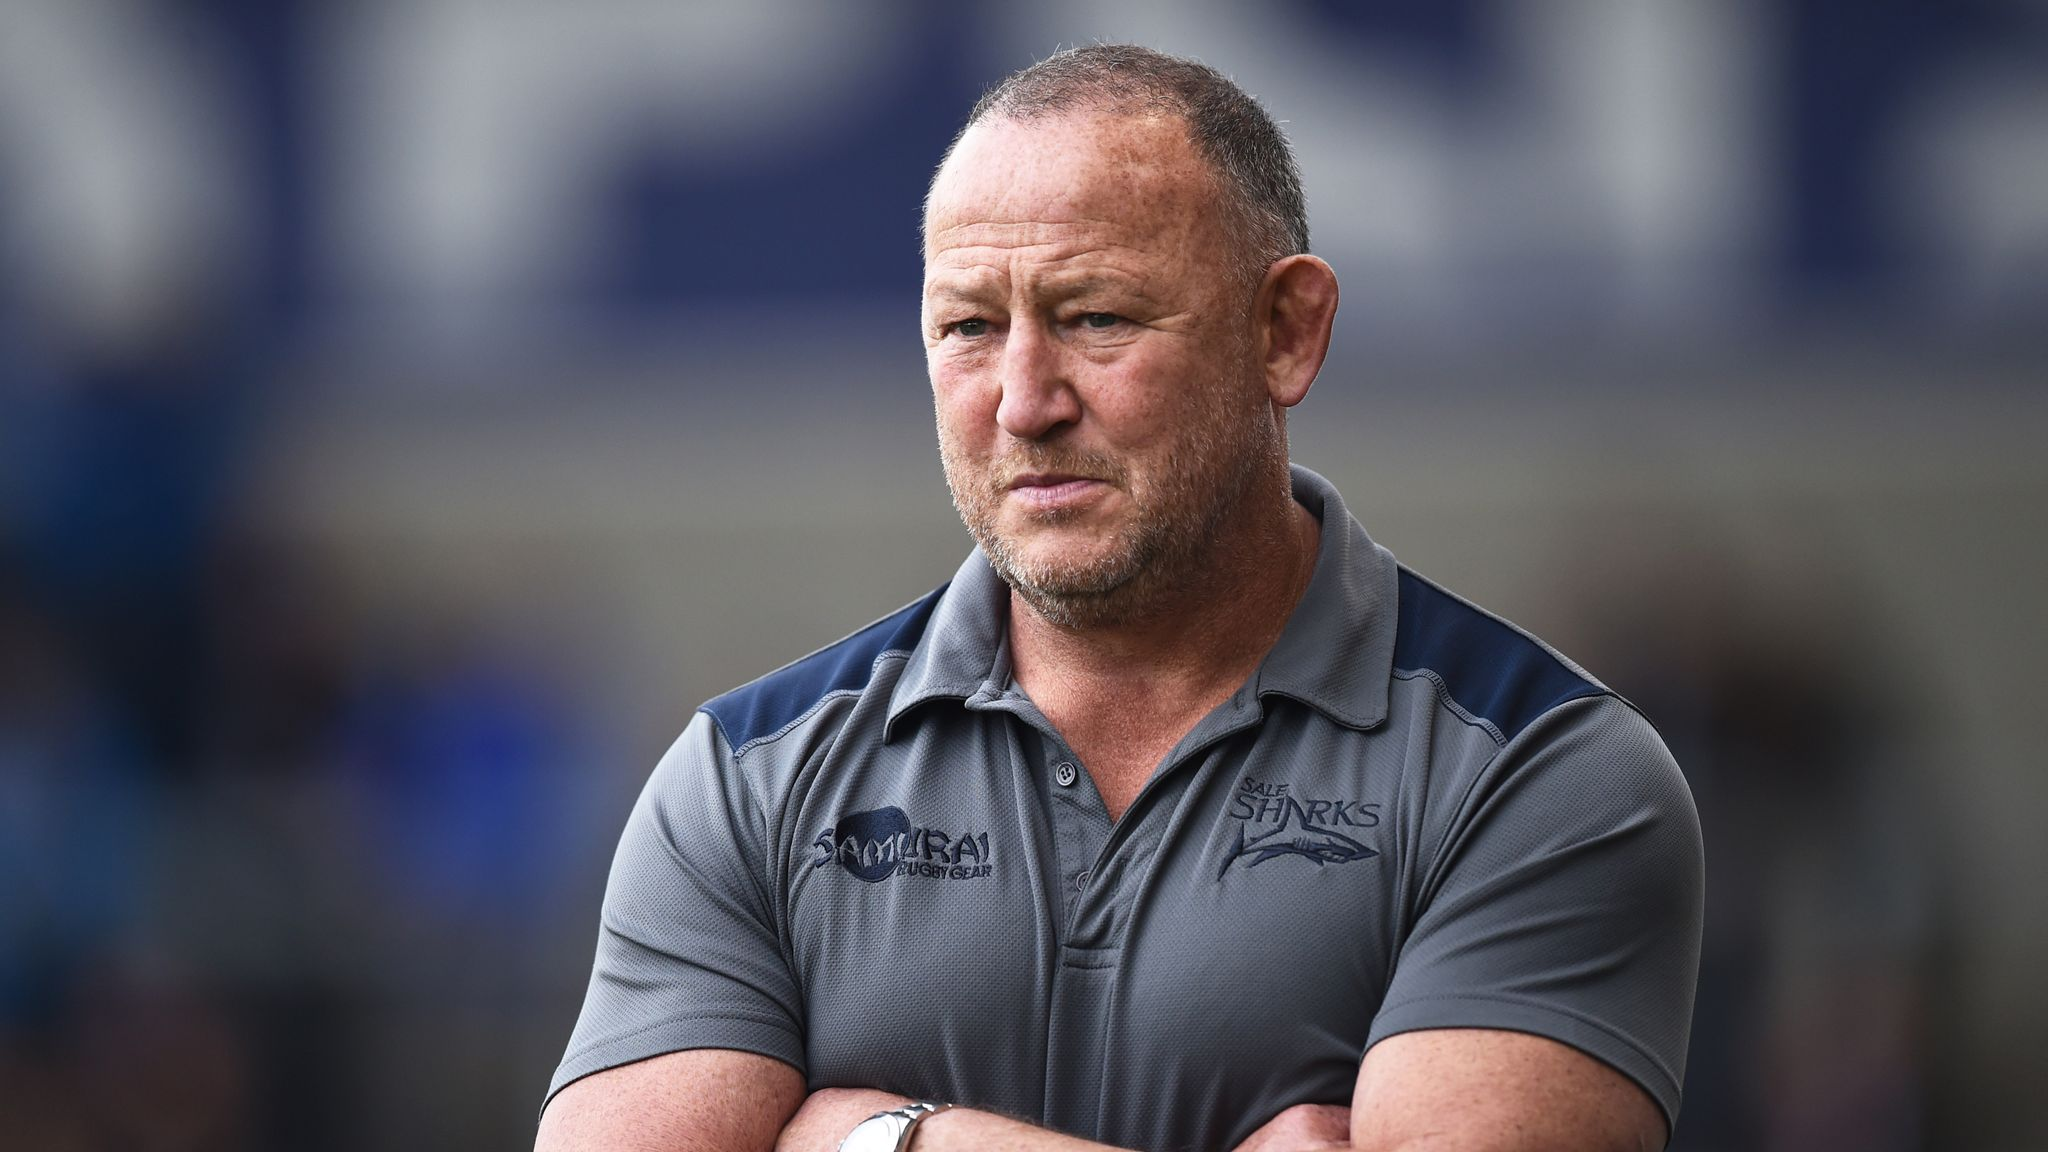 Steve Diamond says Saracens were naive over salary cap breach ...